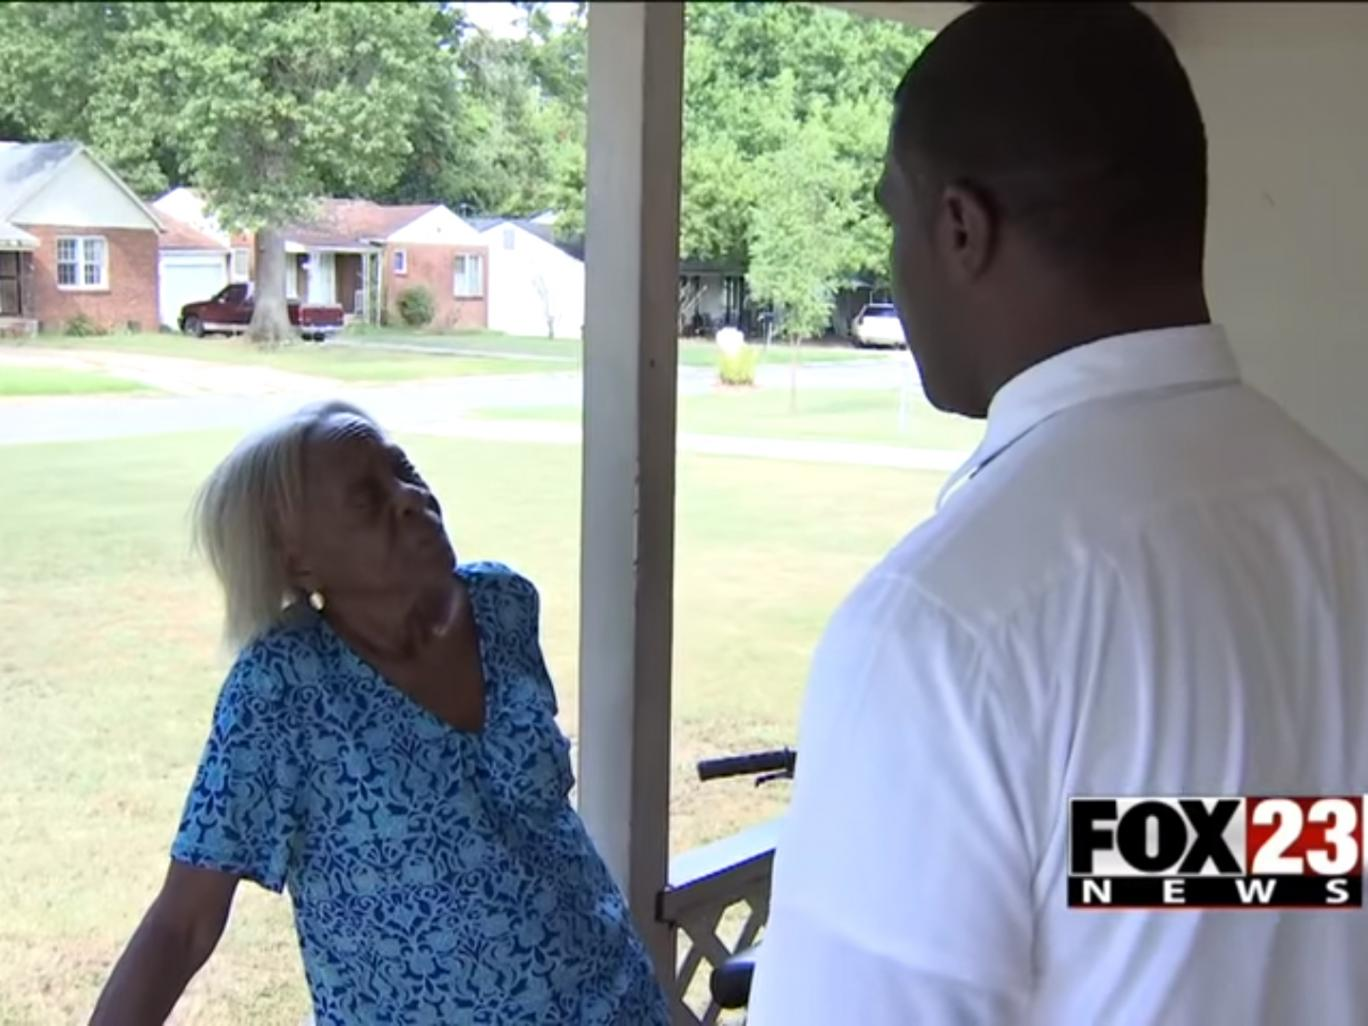 Oklahoma woman, 84 and black, pepper-sprayed in the face by police in her home